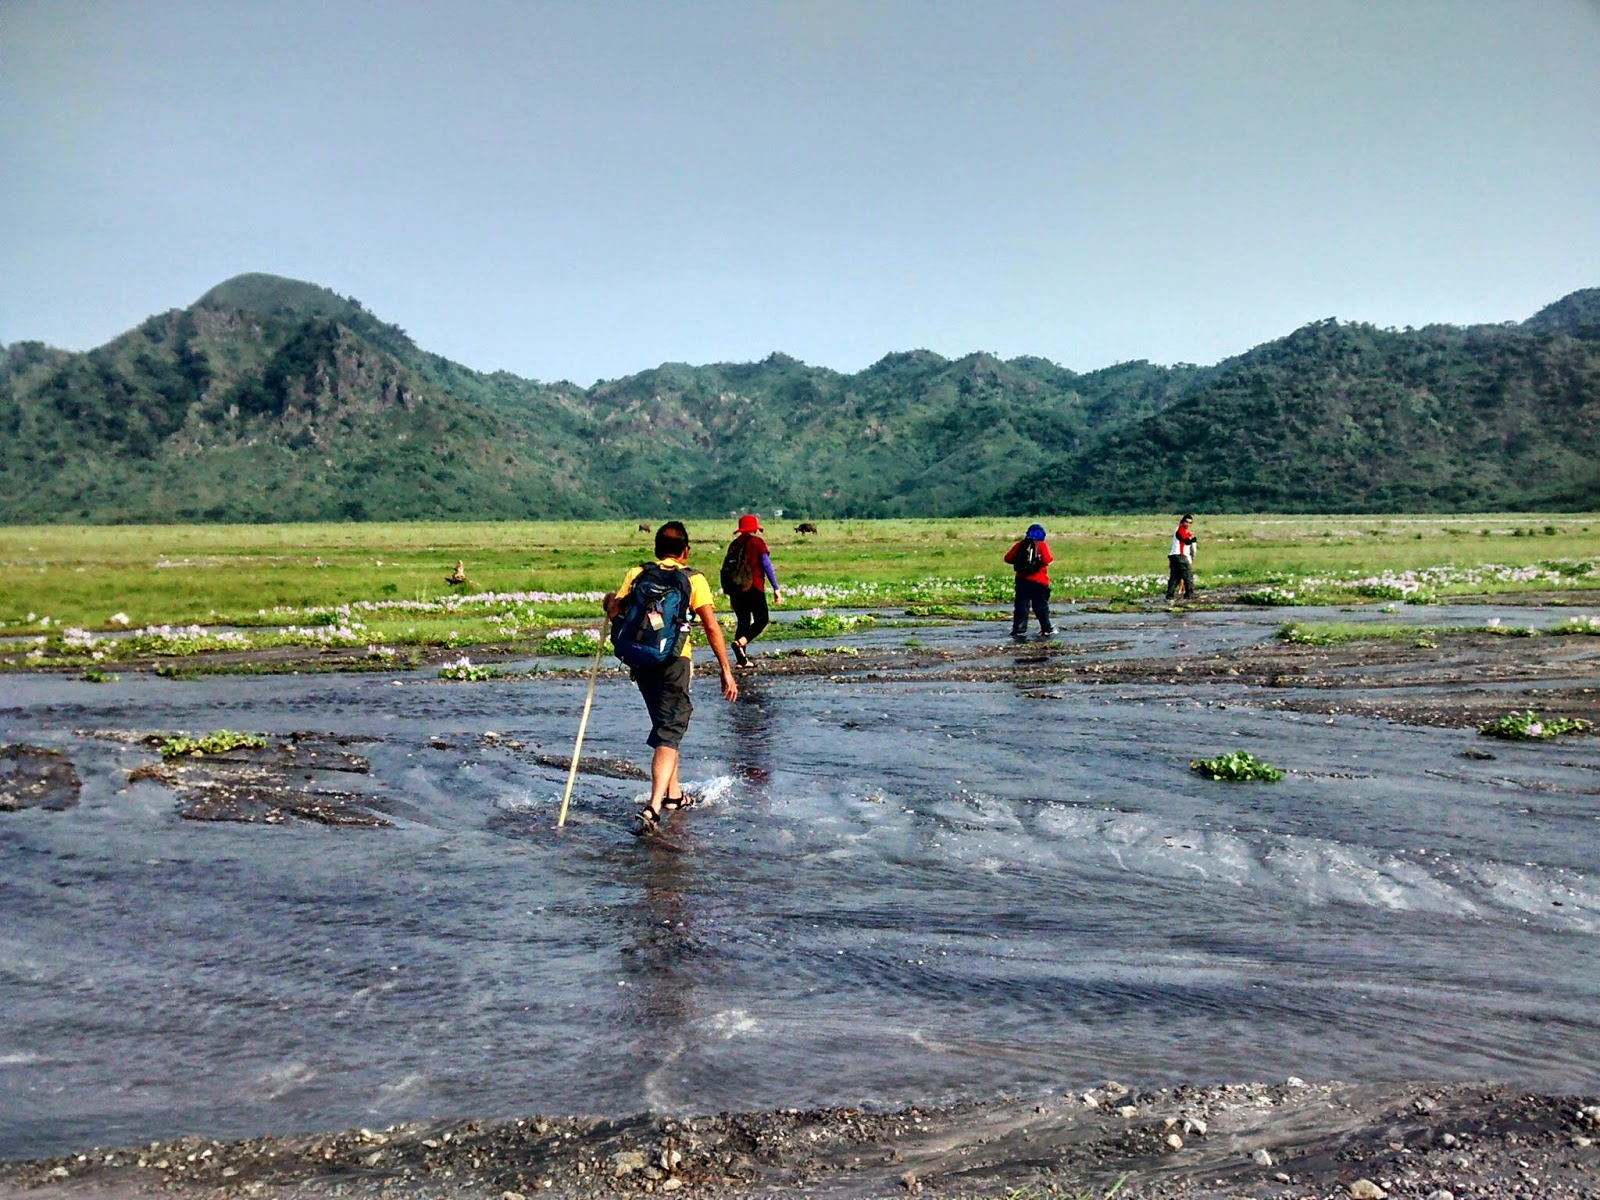 Trudging through the land of lahar